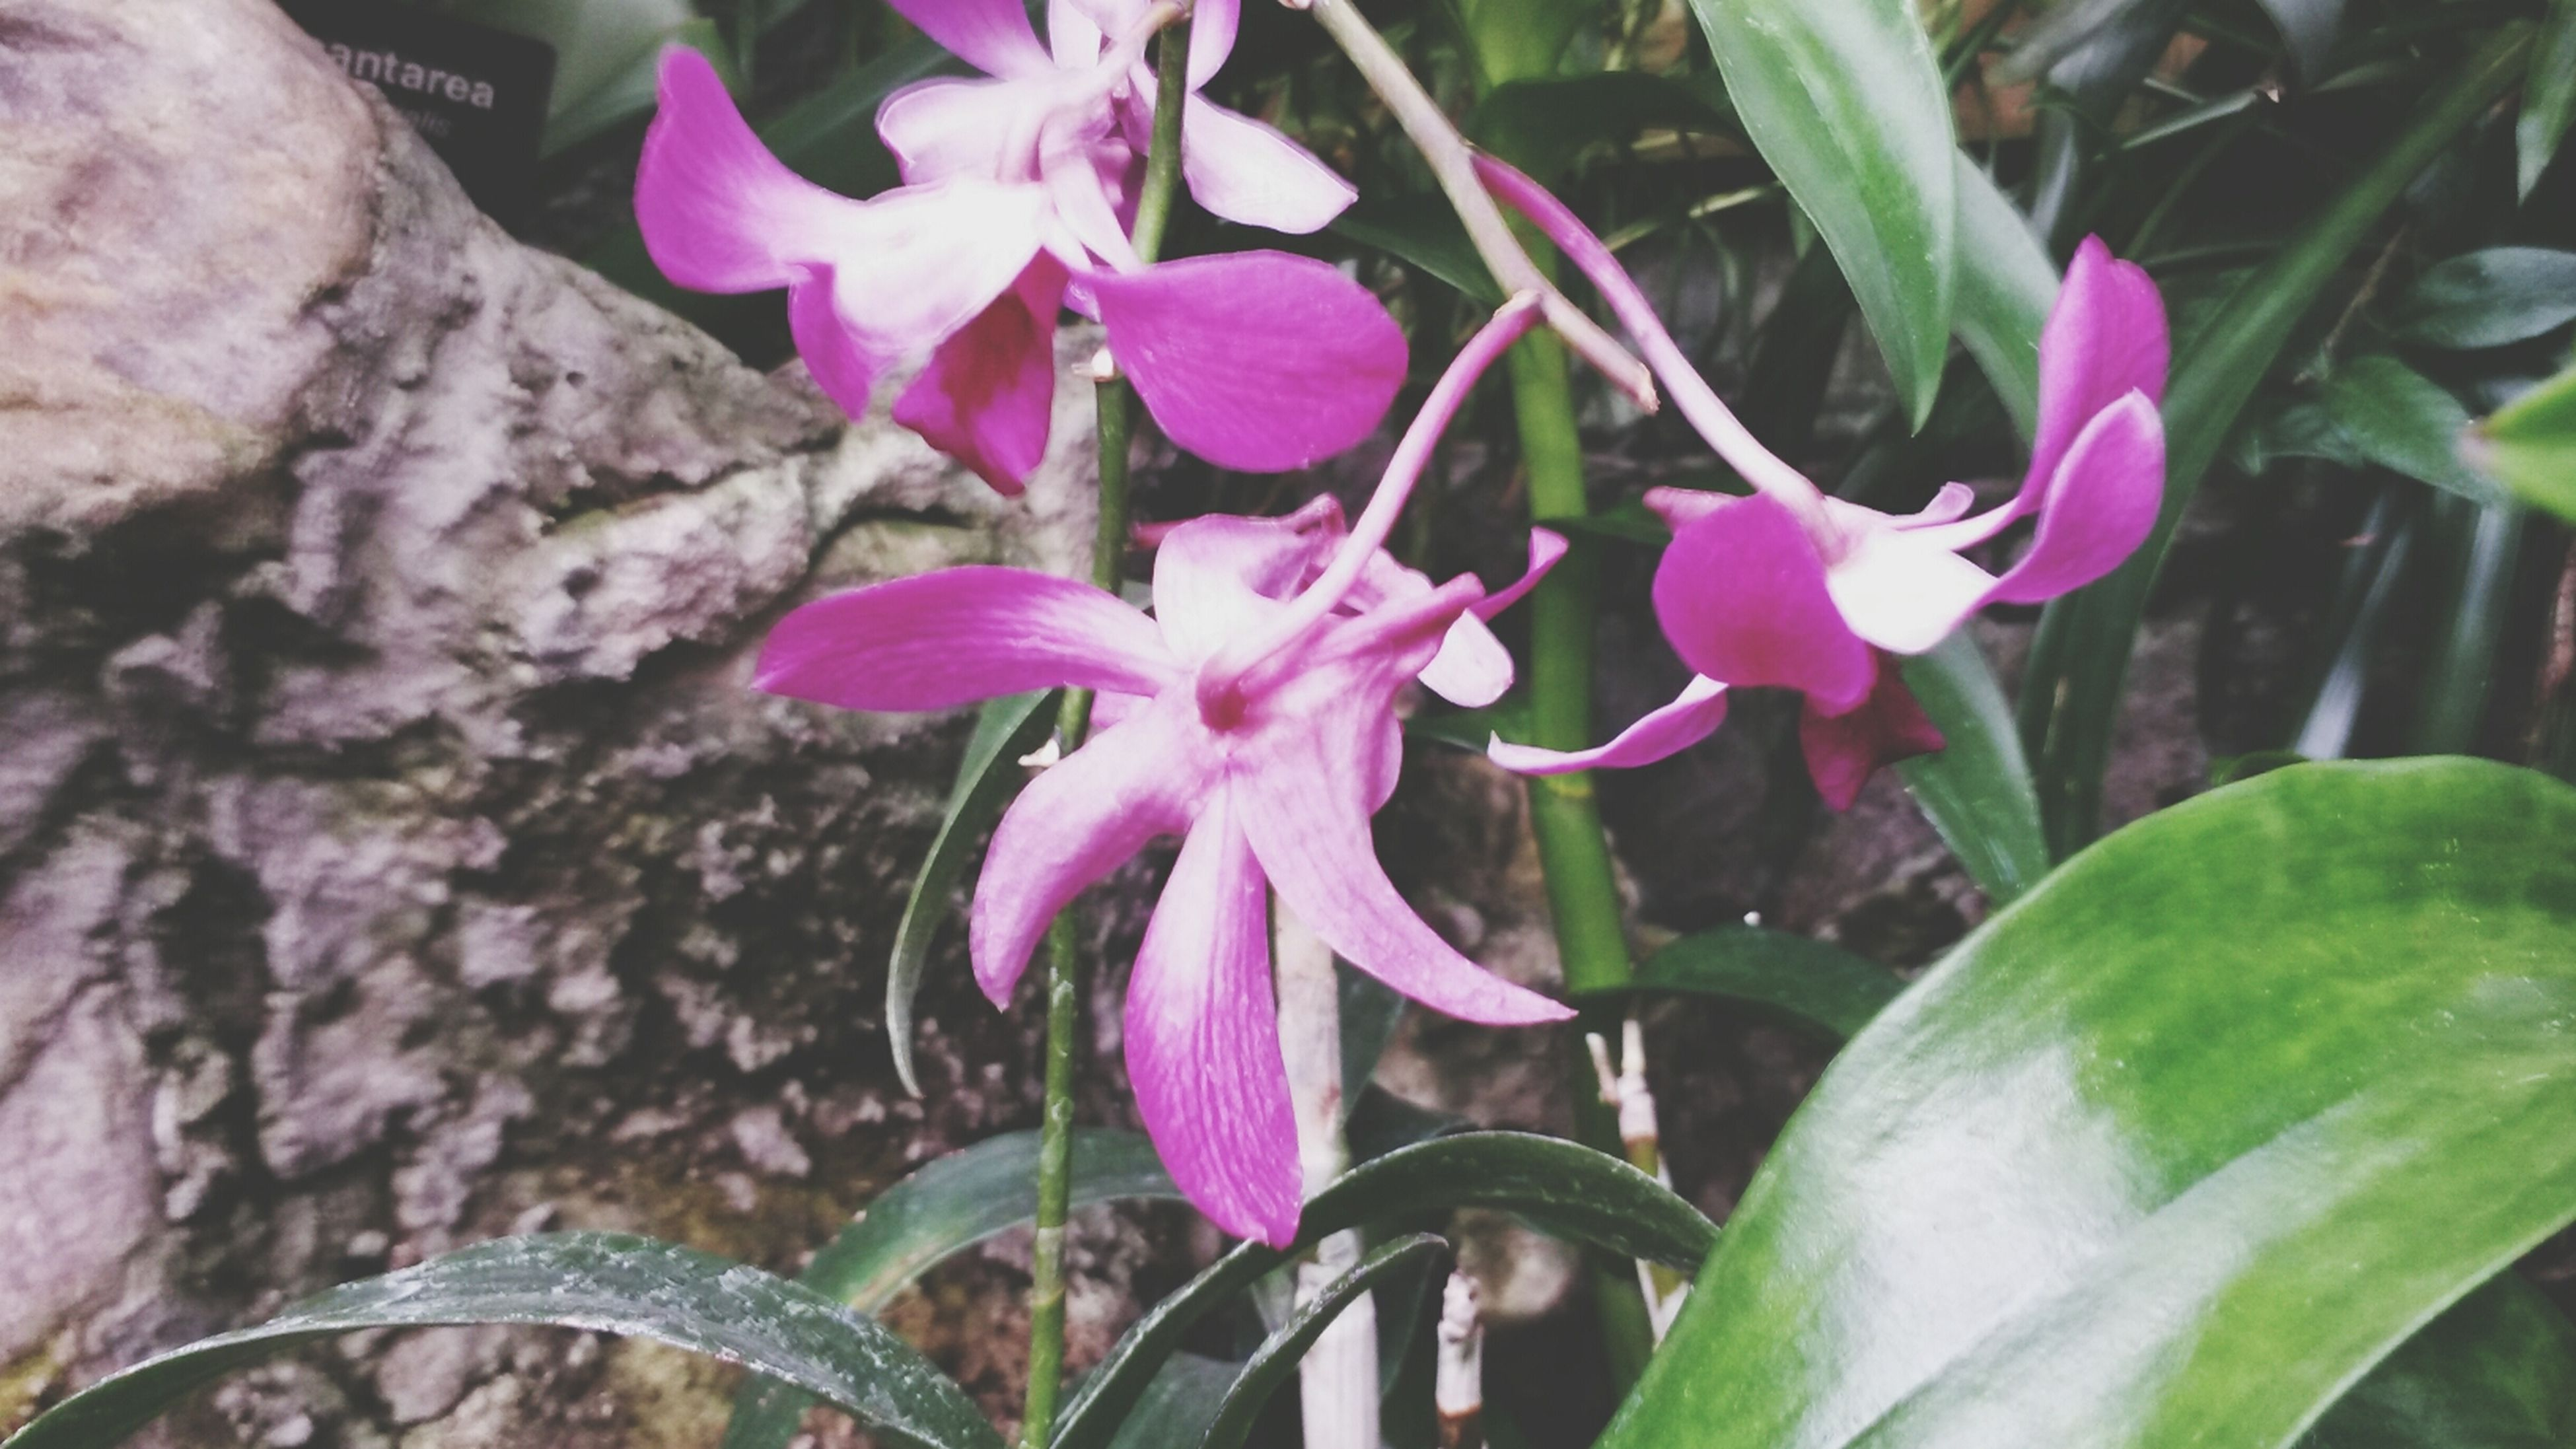 flower, petal, freshness, fragility, growth, flower head, beauty in nature, plant, blooming, pink color, purple, nature, close-up, leaf, in bloom, focus on foreground, stem, outdoors, day, no people